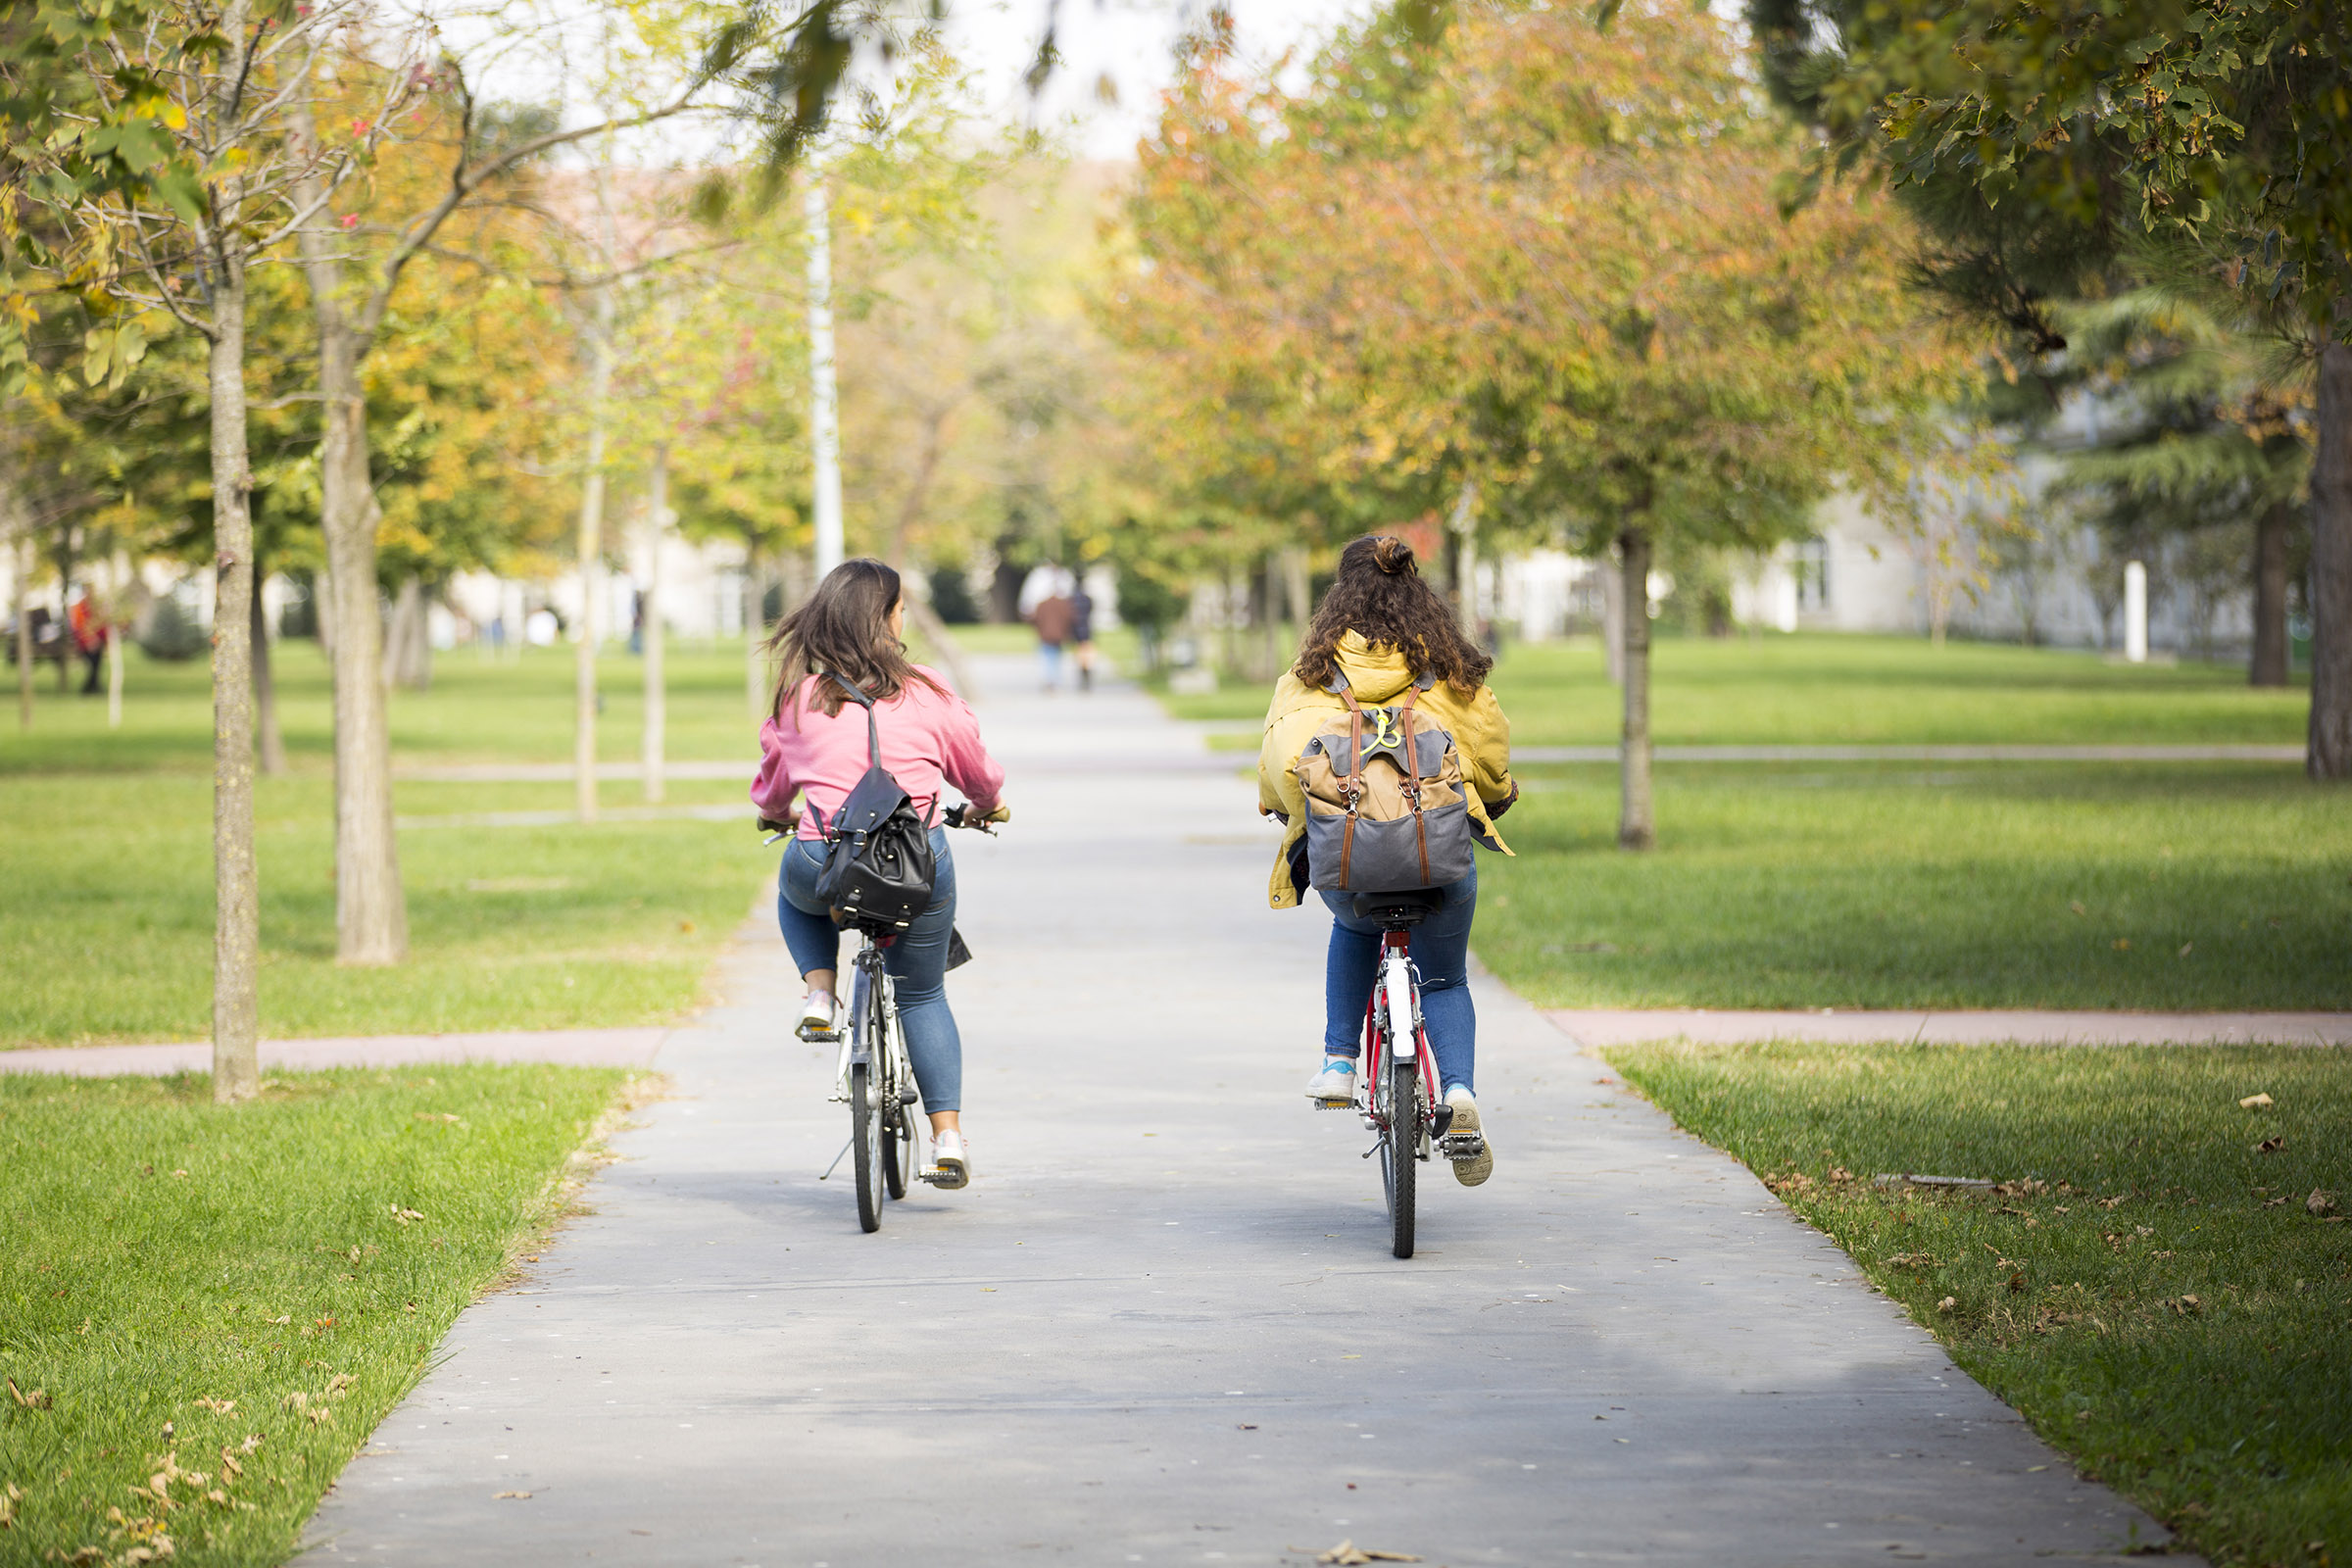 a little girl riding on the back of a bicycle